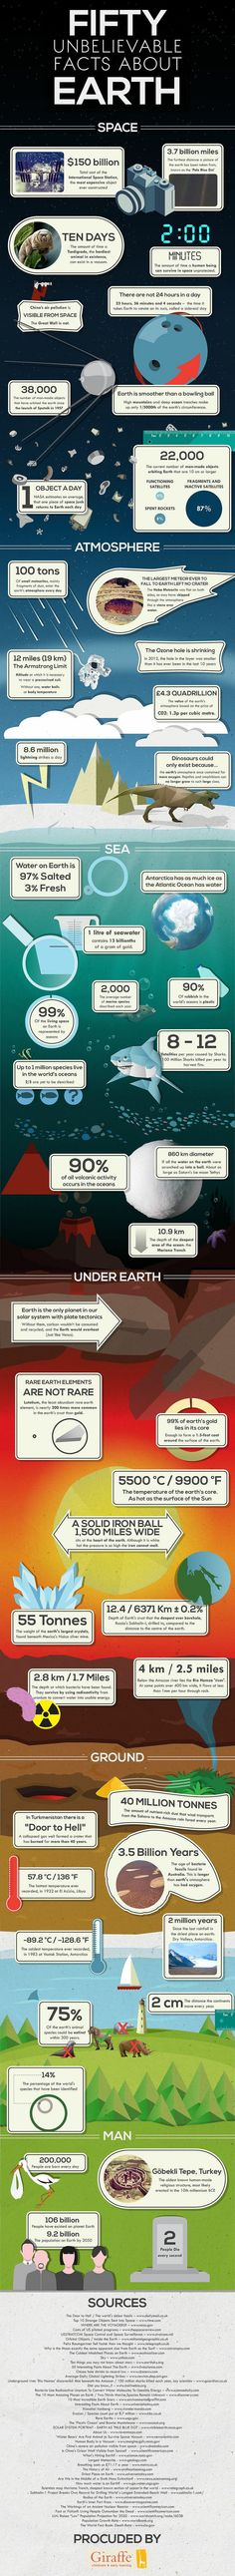 Fifty unbelievable facts about Earth.